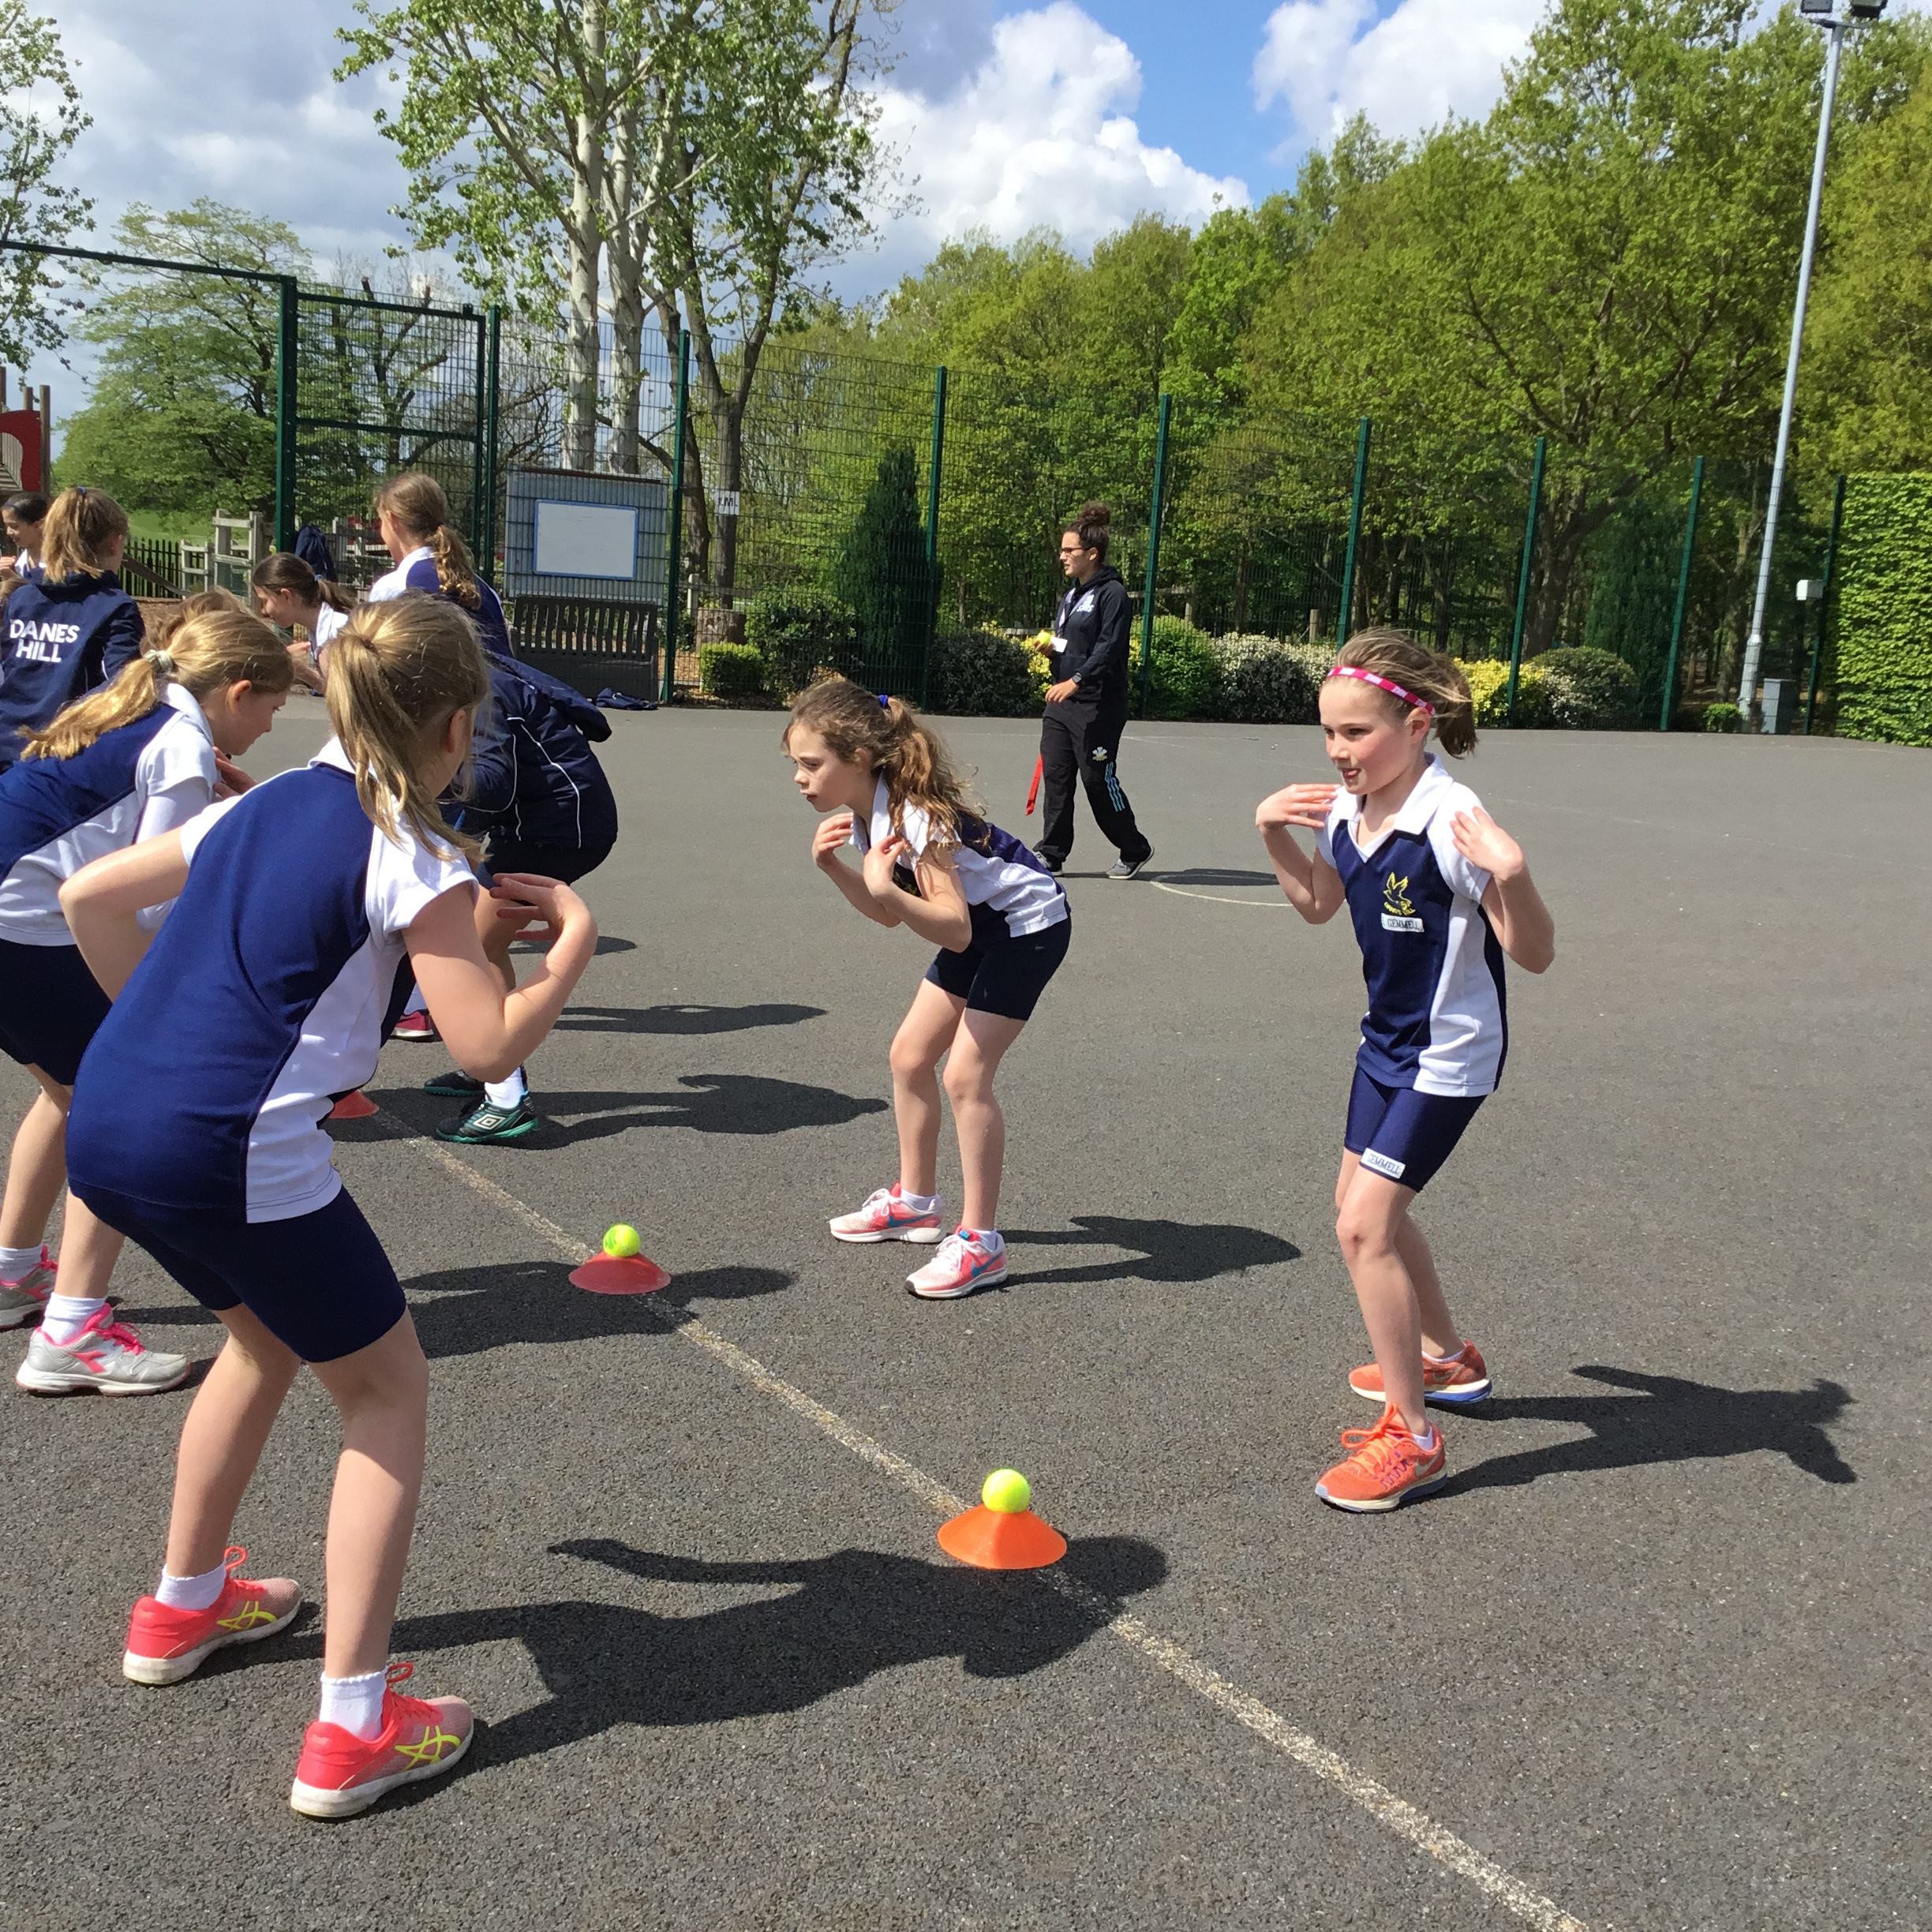 Hannah Jones Girls' Cricket Masterclass